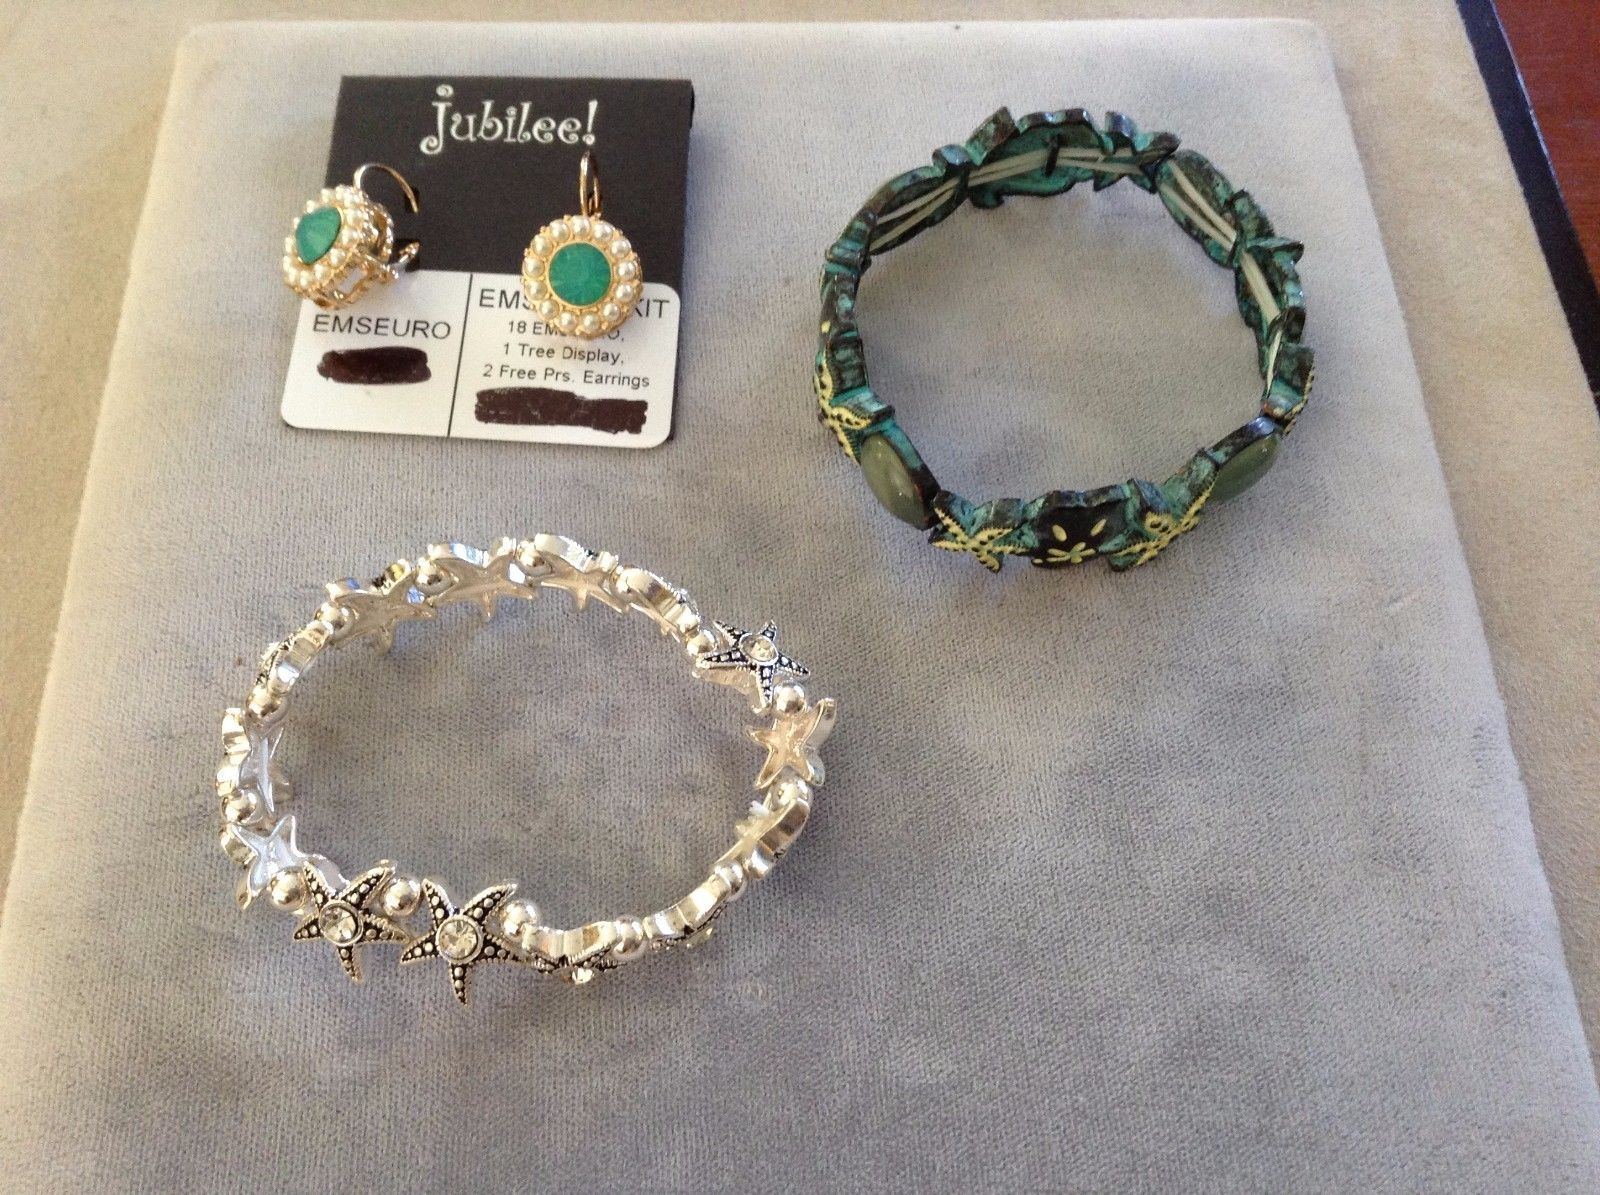 New Jubilee Earrings Silver Toned Gold Toned Sea Green Starfish Two Bracelet Set